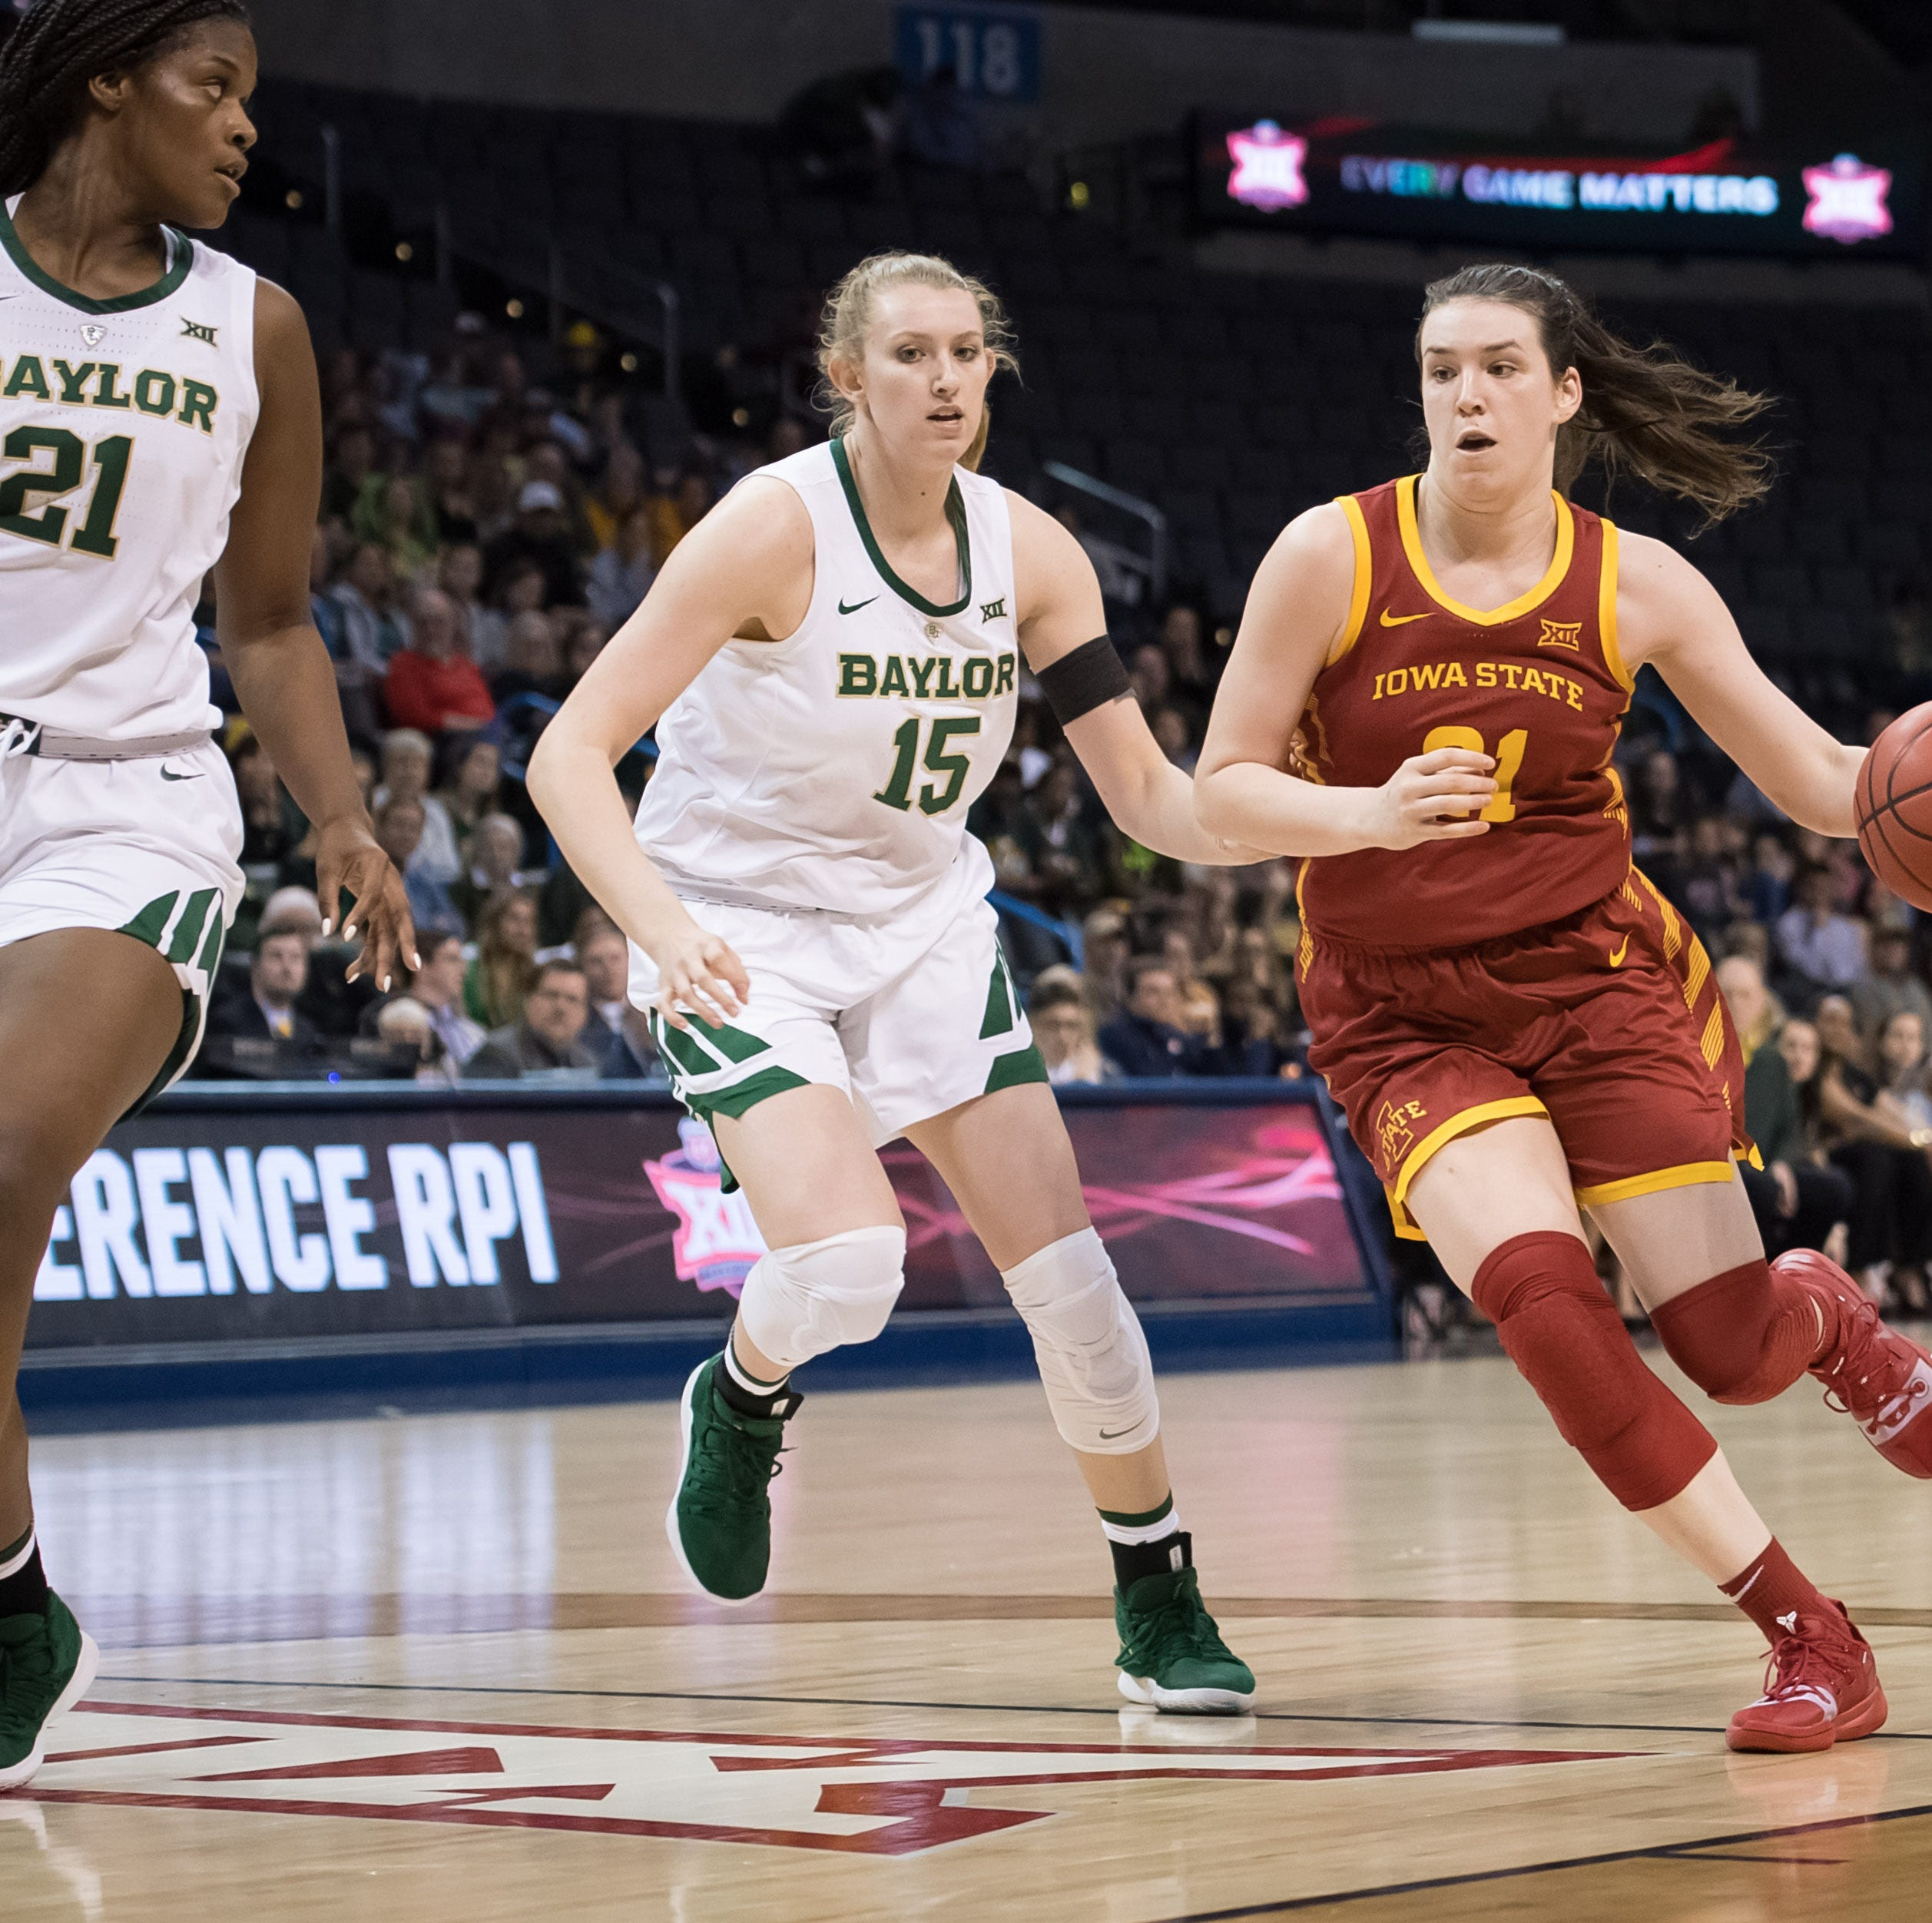 Iowa State falls to top-ranked Baylor in the finals of the Big 12 Tournament